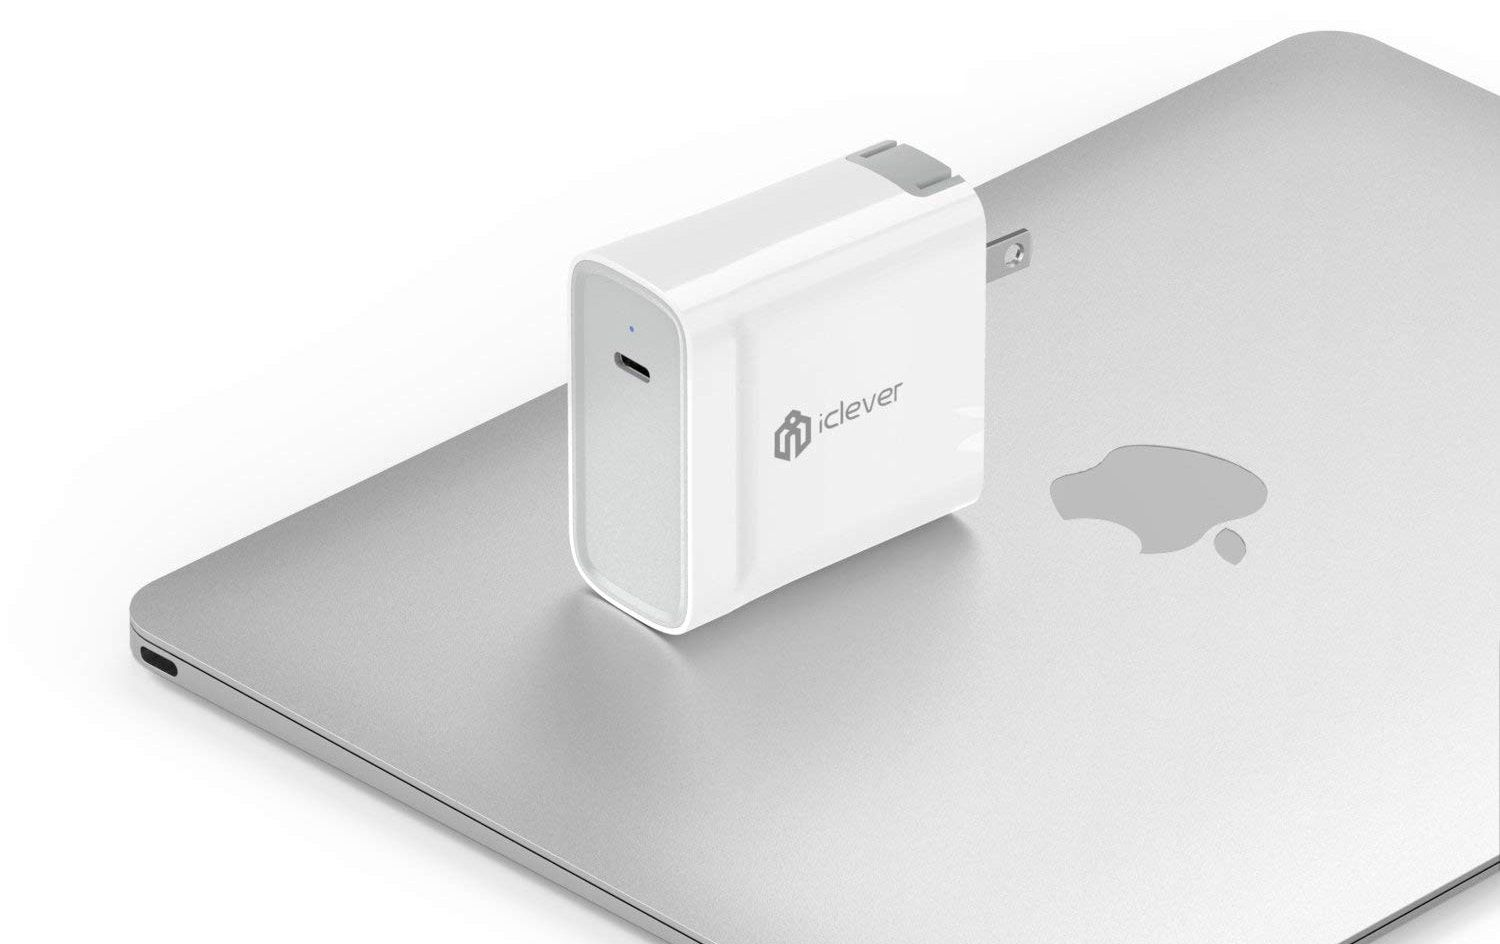 Charge your macbook iphone ipad really fast with 17